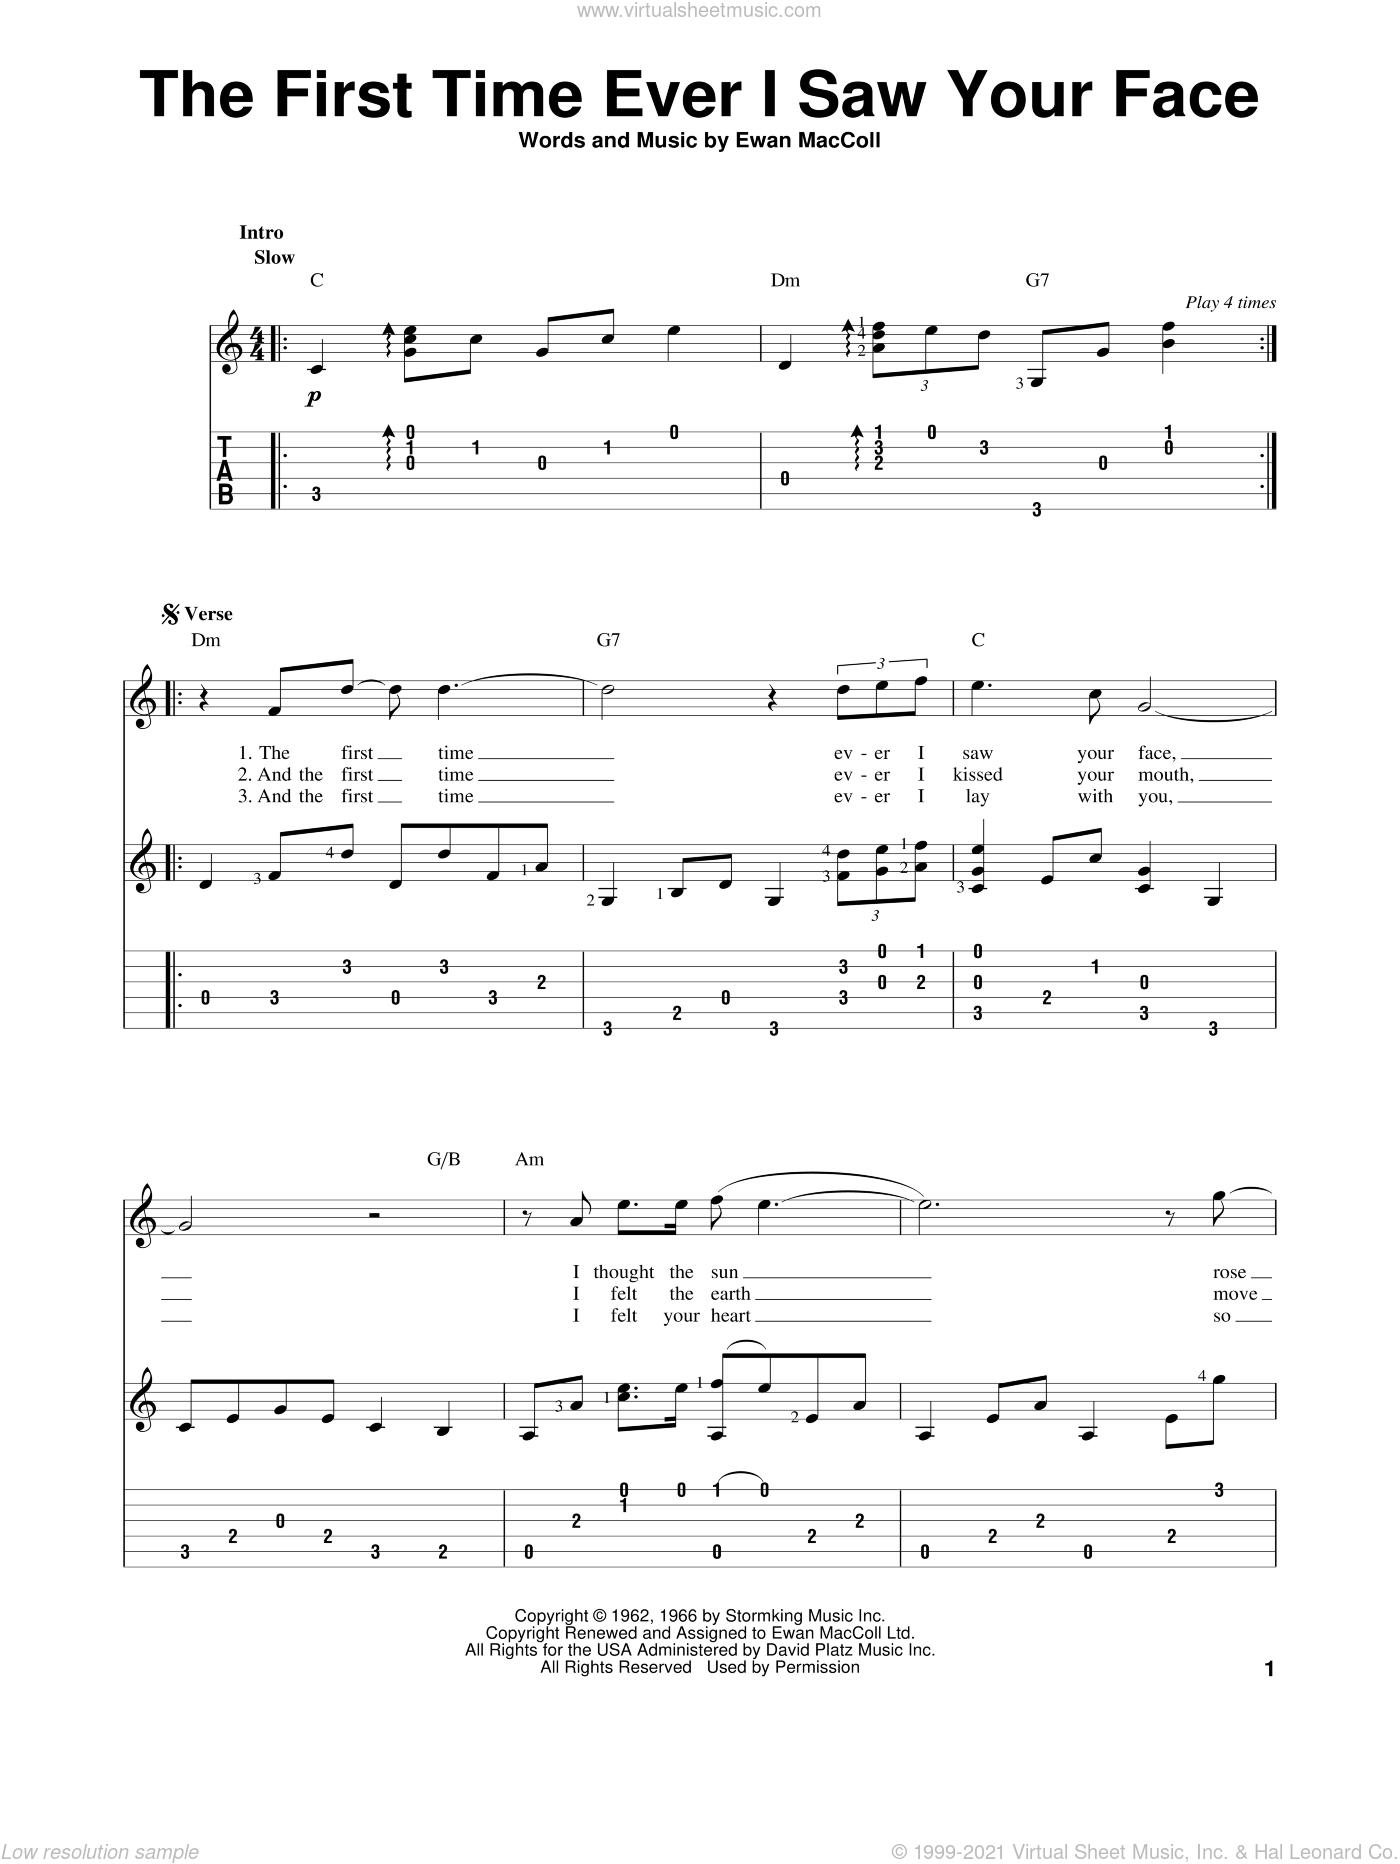 The First Time Ever I Saw Your Face sheet music for guitar solo by Roberta Flack and Ewan MacColl, intermediate skill level